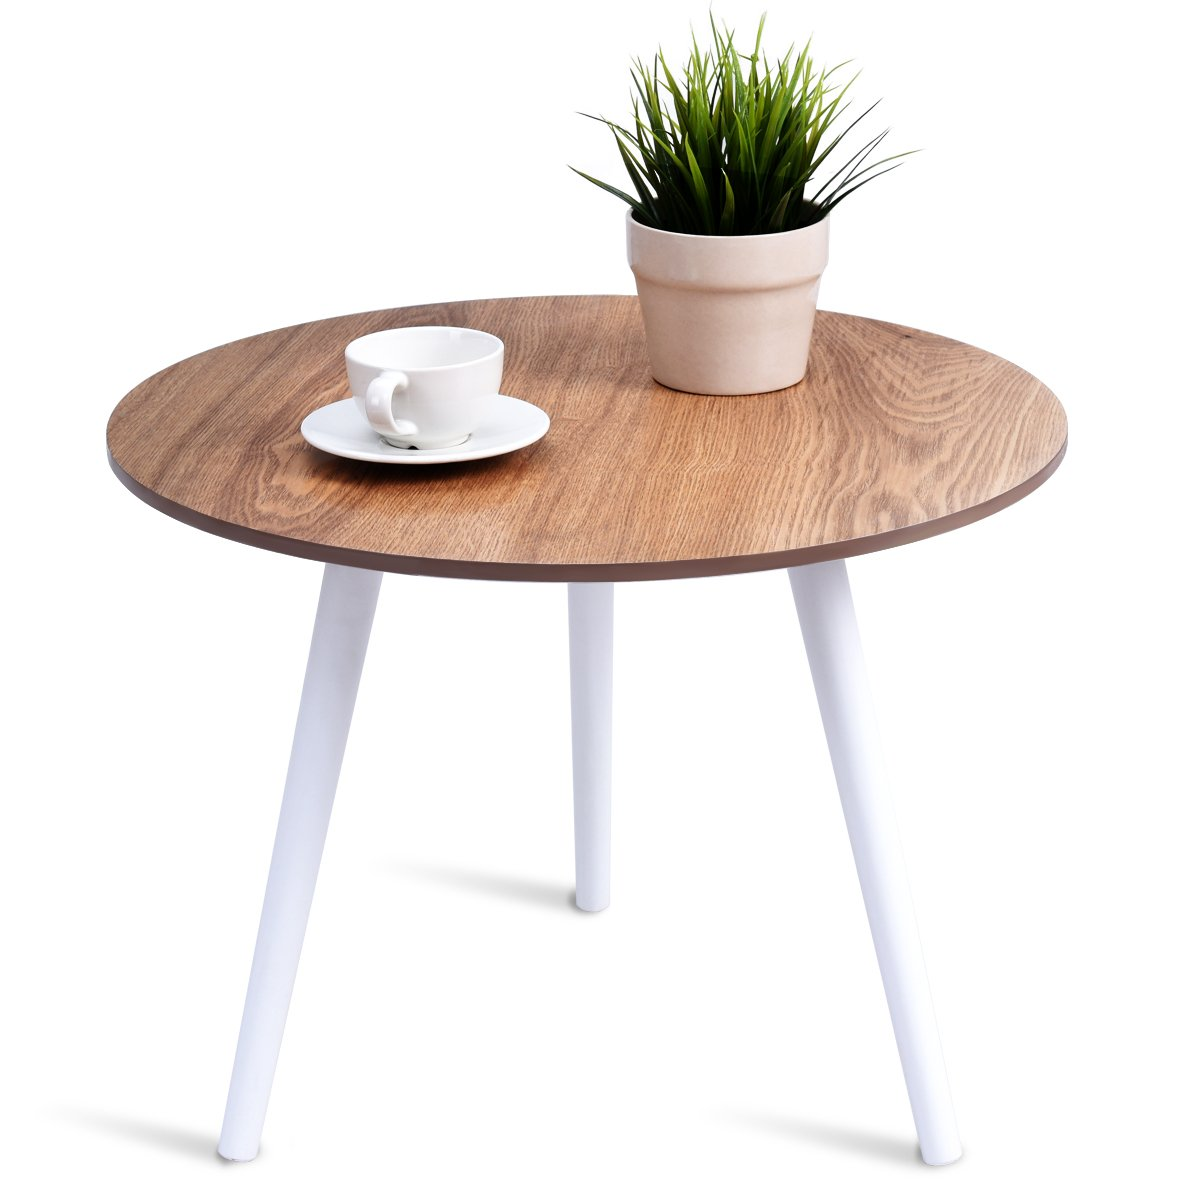 Casart Modern Table Nesting/Retro/Lamp/Corner/Coffee/Tea/Side/End Table Scandinavian Office Home Indoor (Nest of 3 tables)